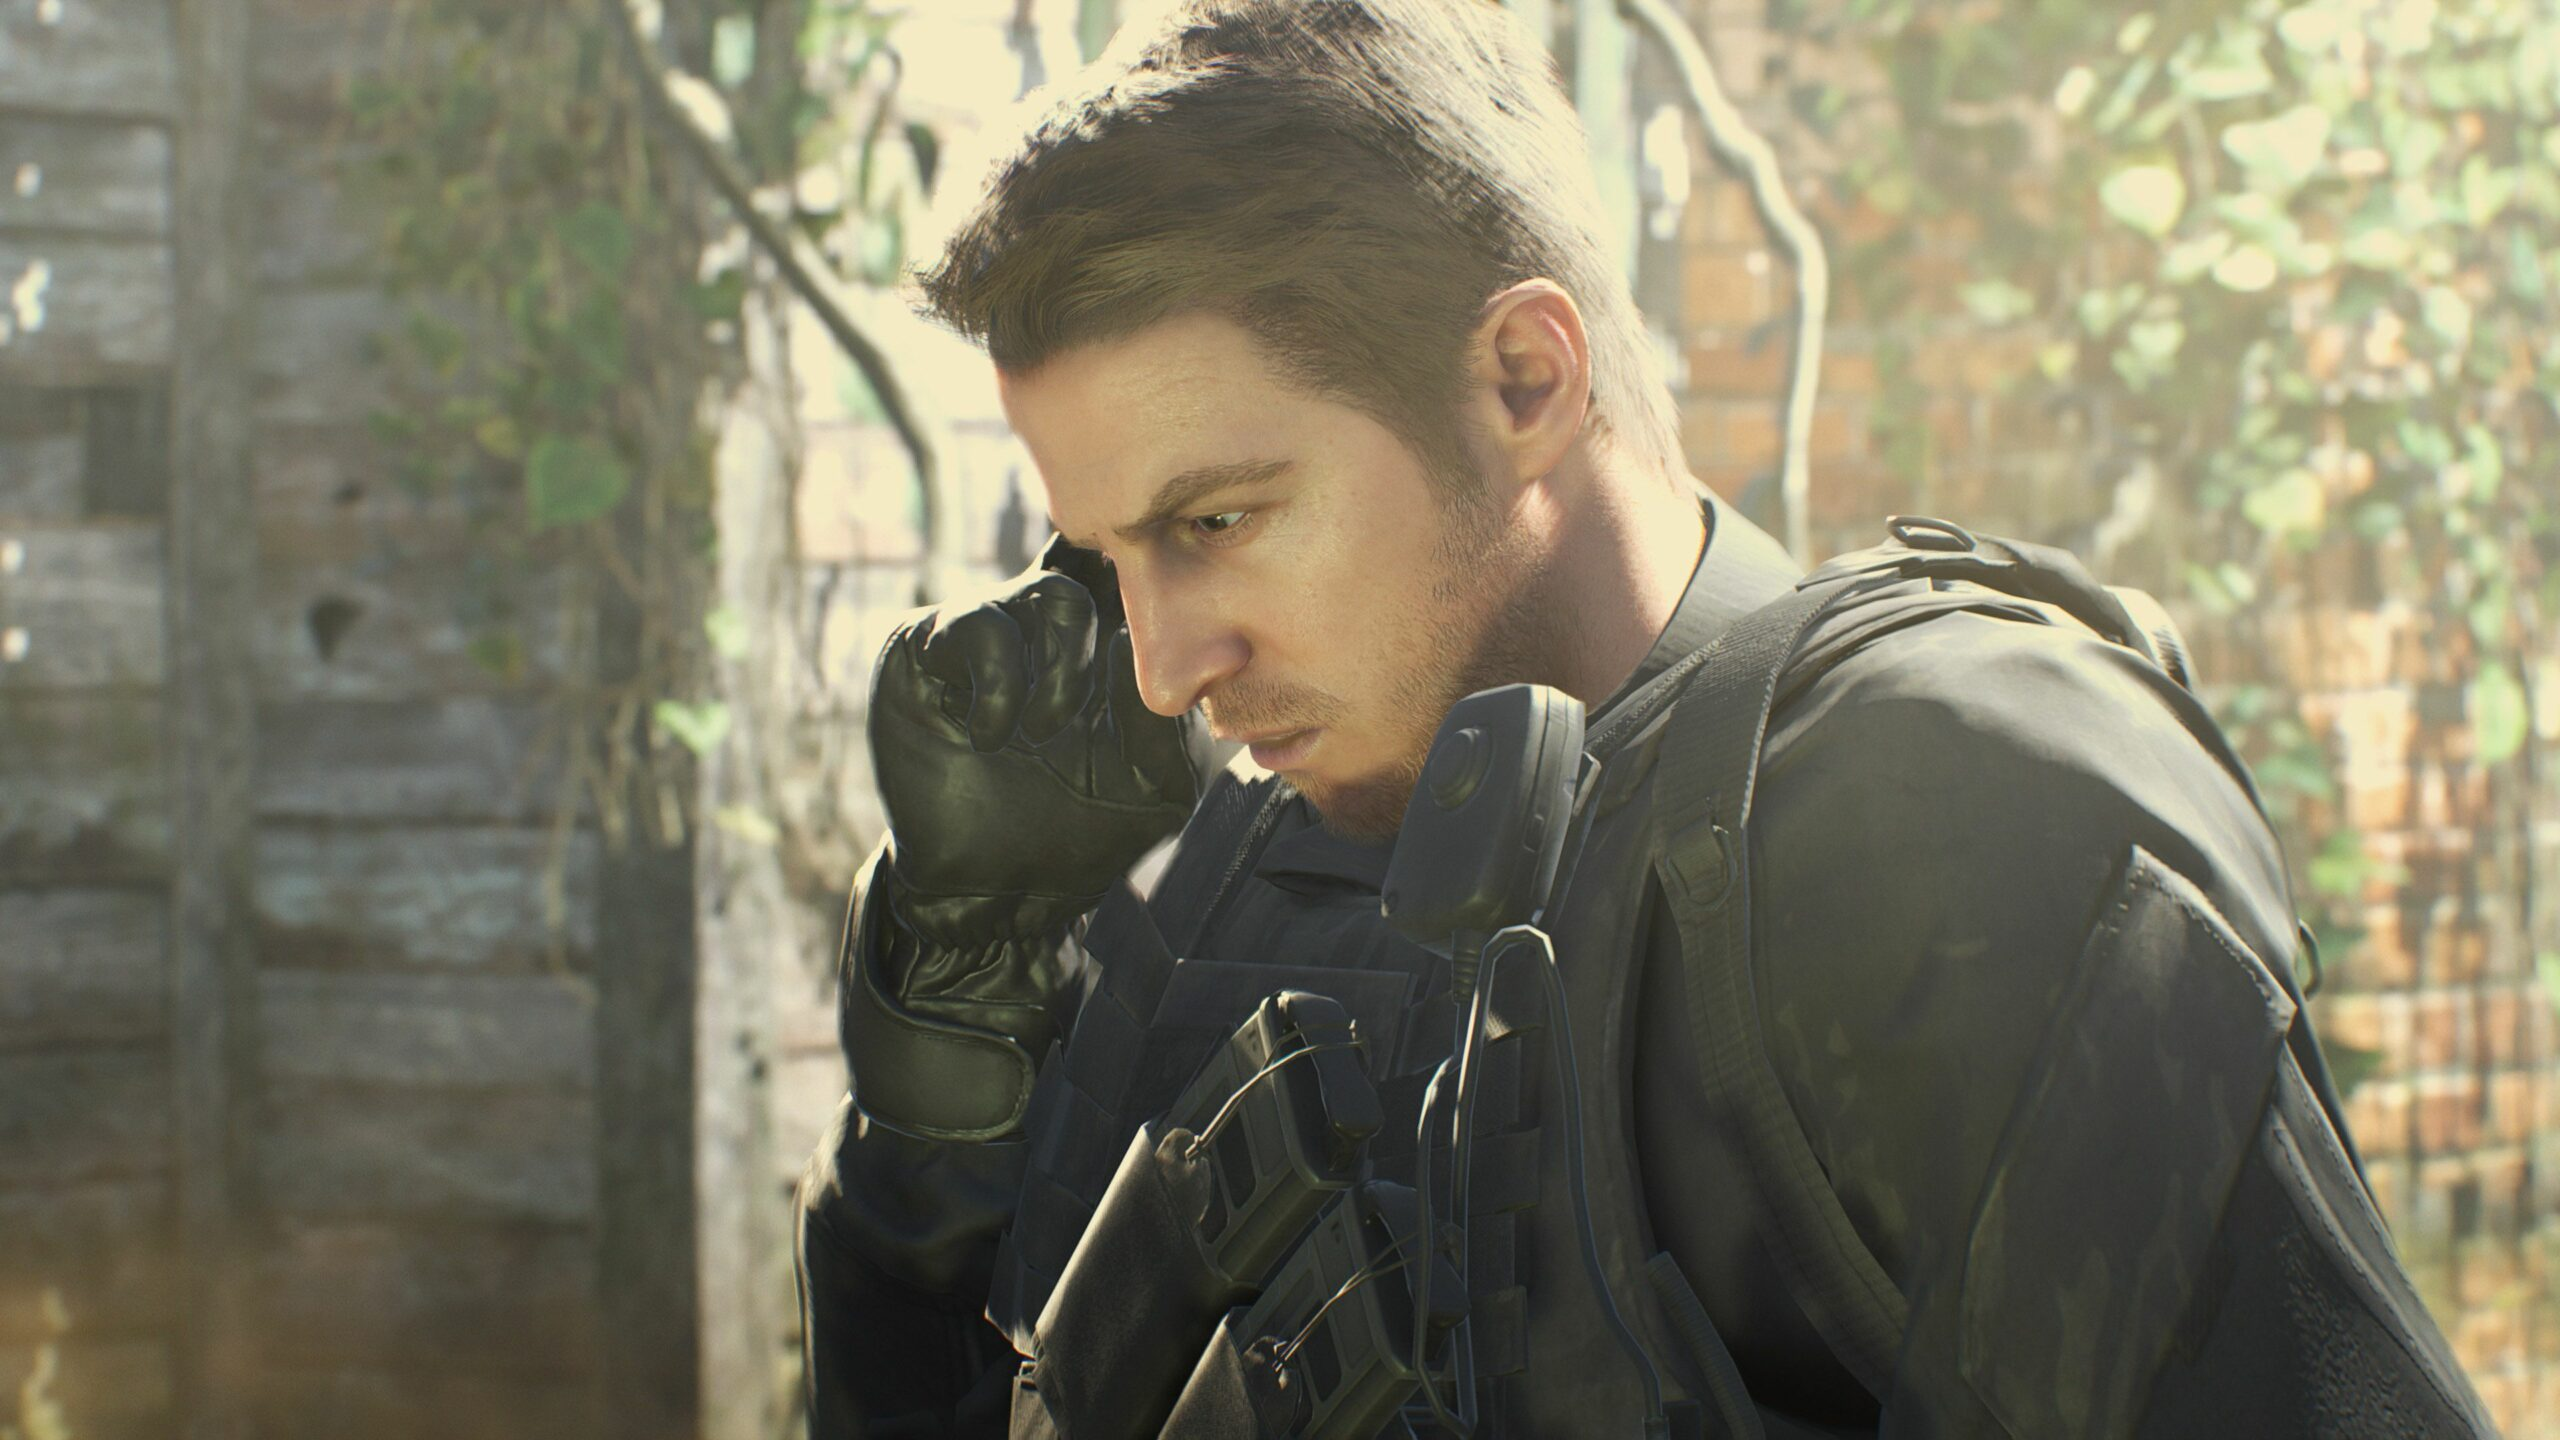 Resident Evil 8 To Feature Chris Redfield In A Prominent Role To